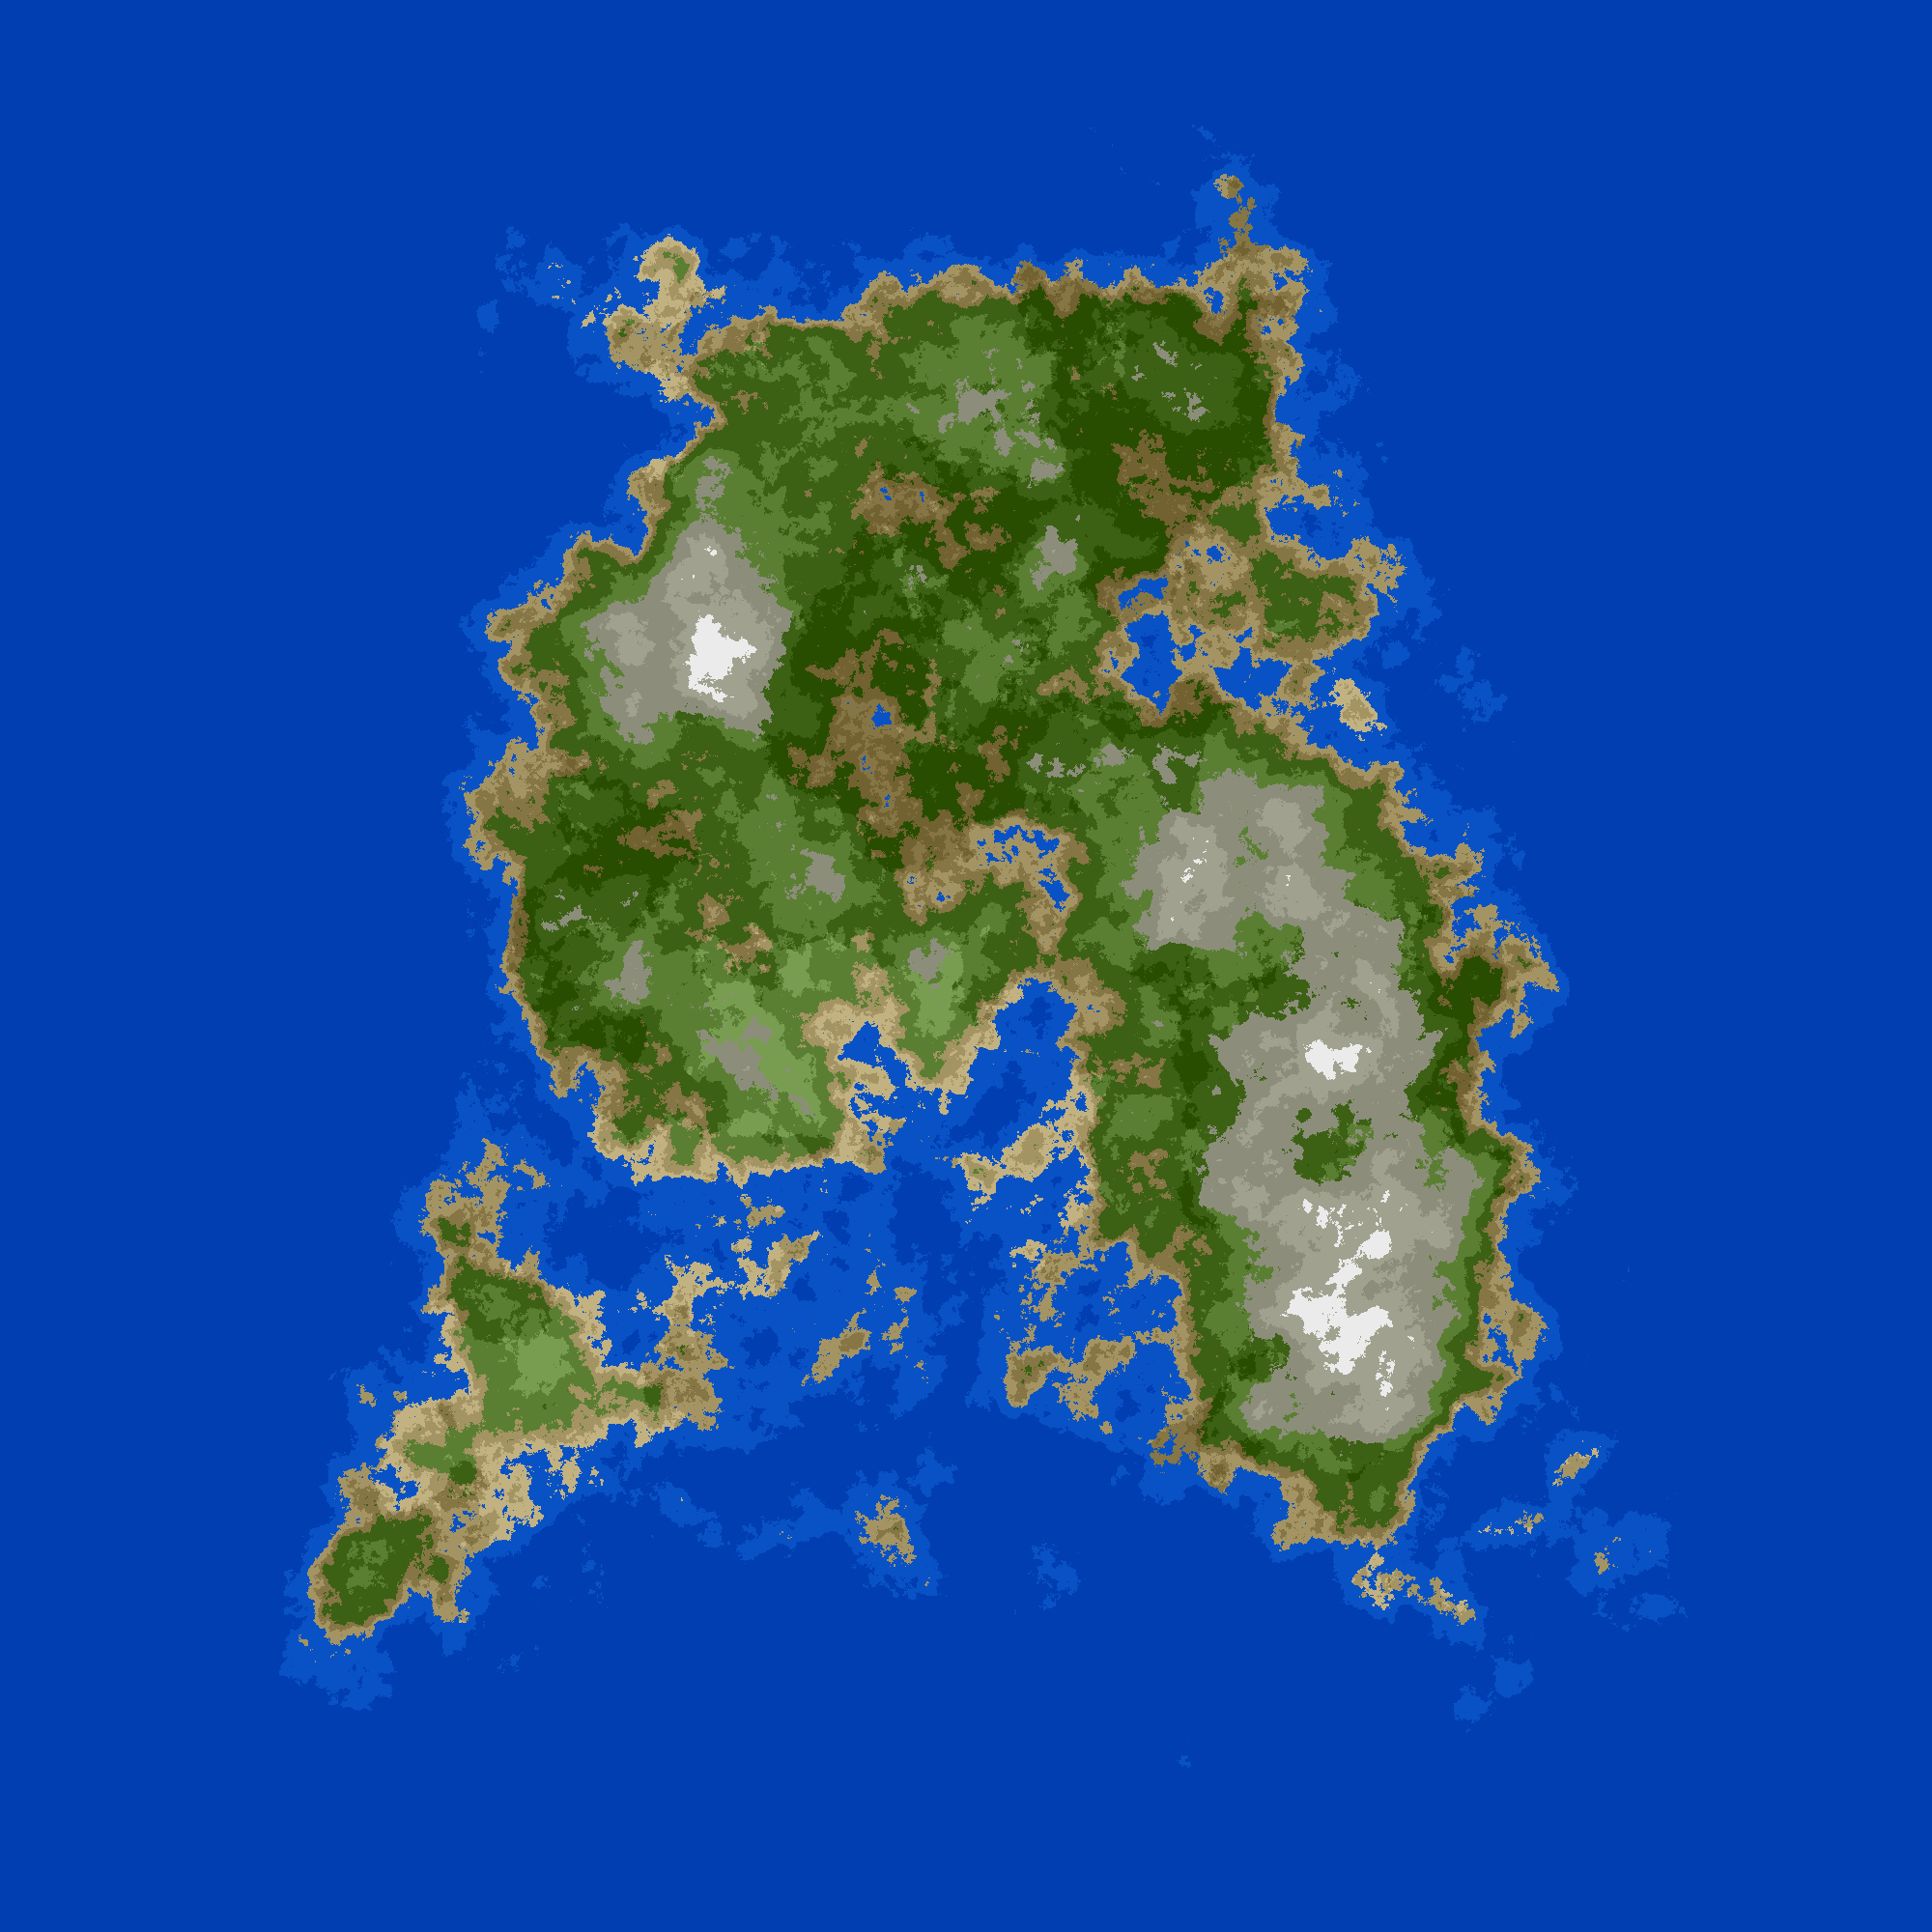 Procedural 2D Island Generation — Noise Functions - Travall